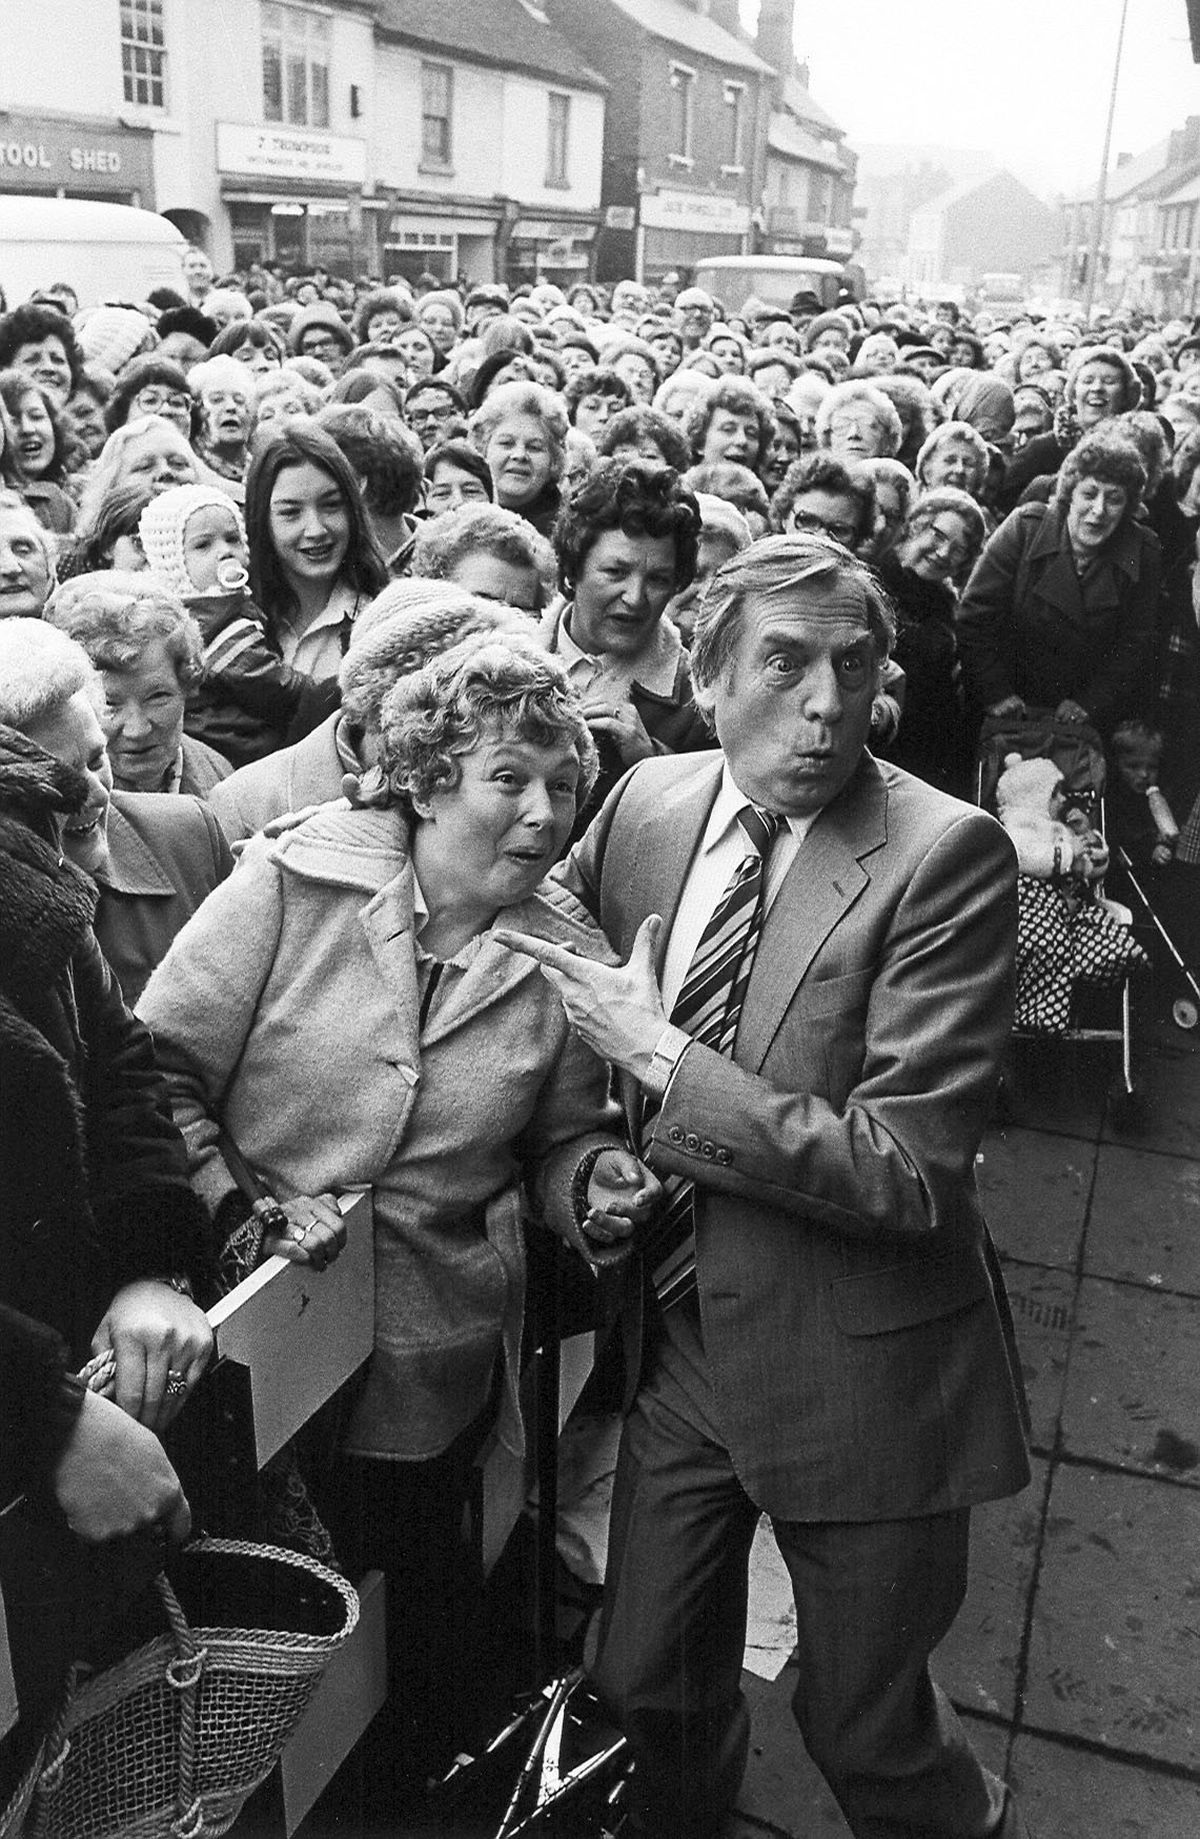 Larry Grayson at Old Hill Market in 1980